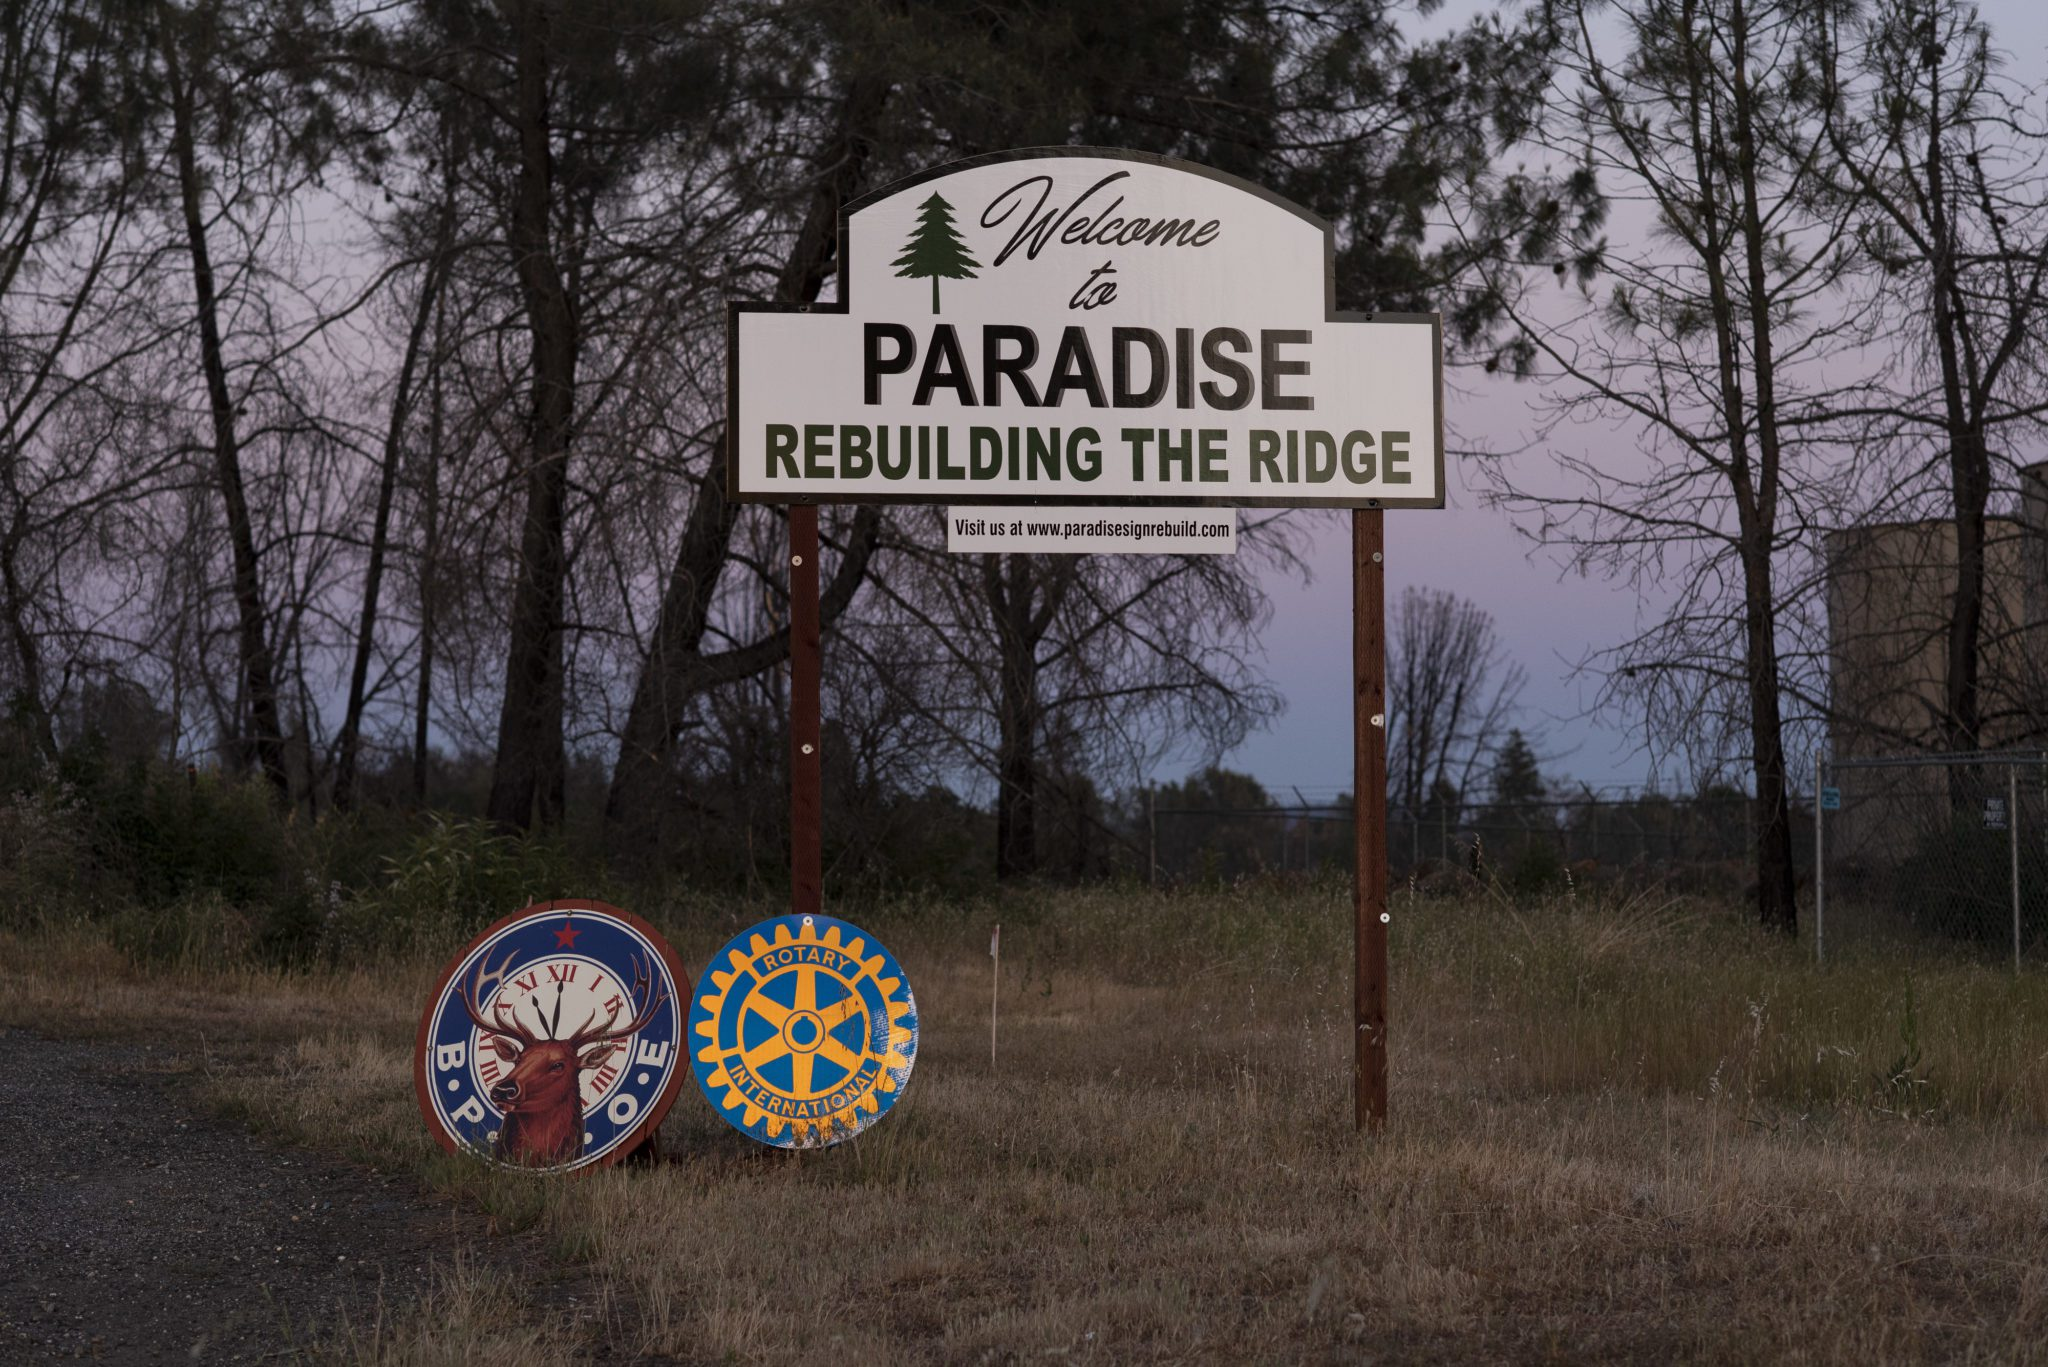 The Welcome to Paradise sign just outside Paradise, Calif. on Tuesday May 4, 2021. Salgu Wissmath for The Intercept